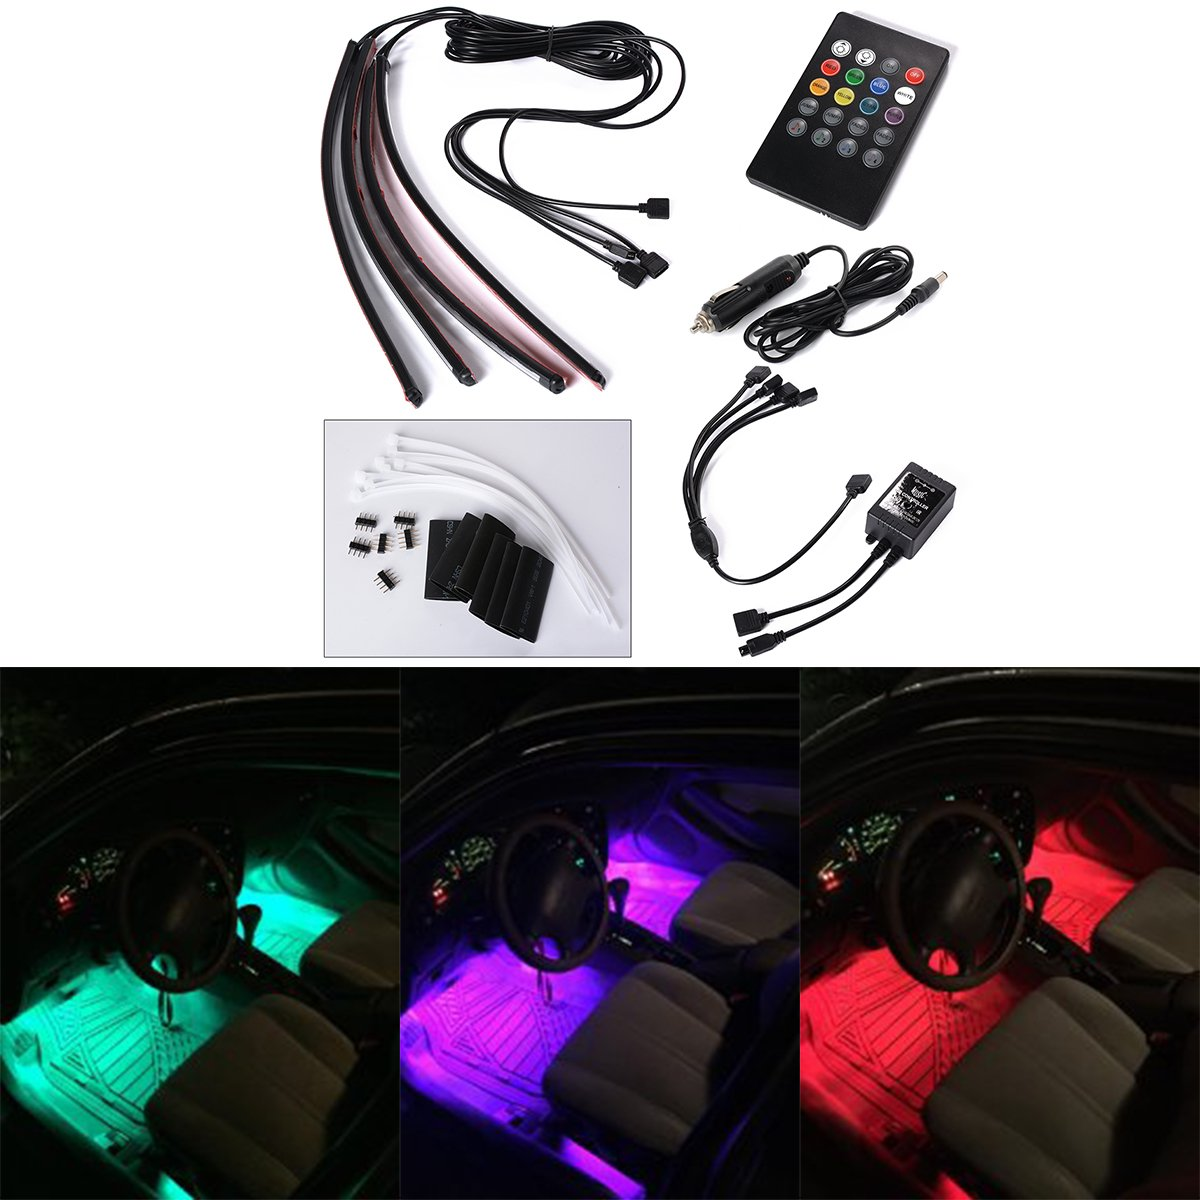 Led Strips For Cars Auto Mobile Wiring Diagram Remote Xcellent Global 4pcs 12 Inch 8 Color Car Interior Light Decoration Atmosphere Neon Strip